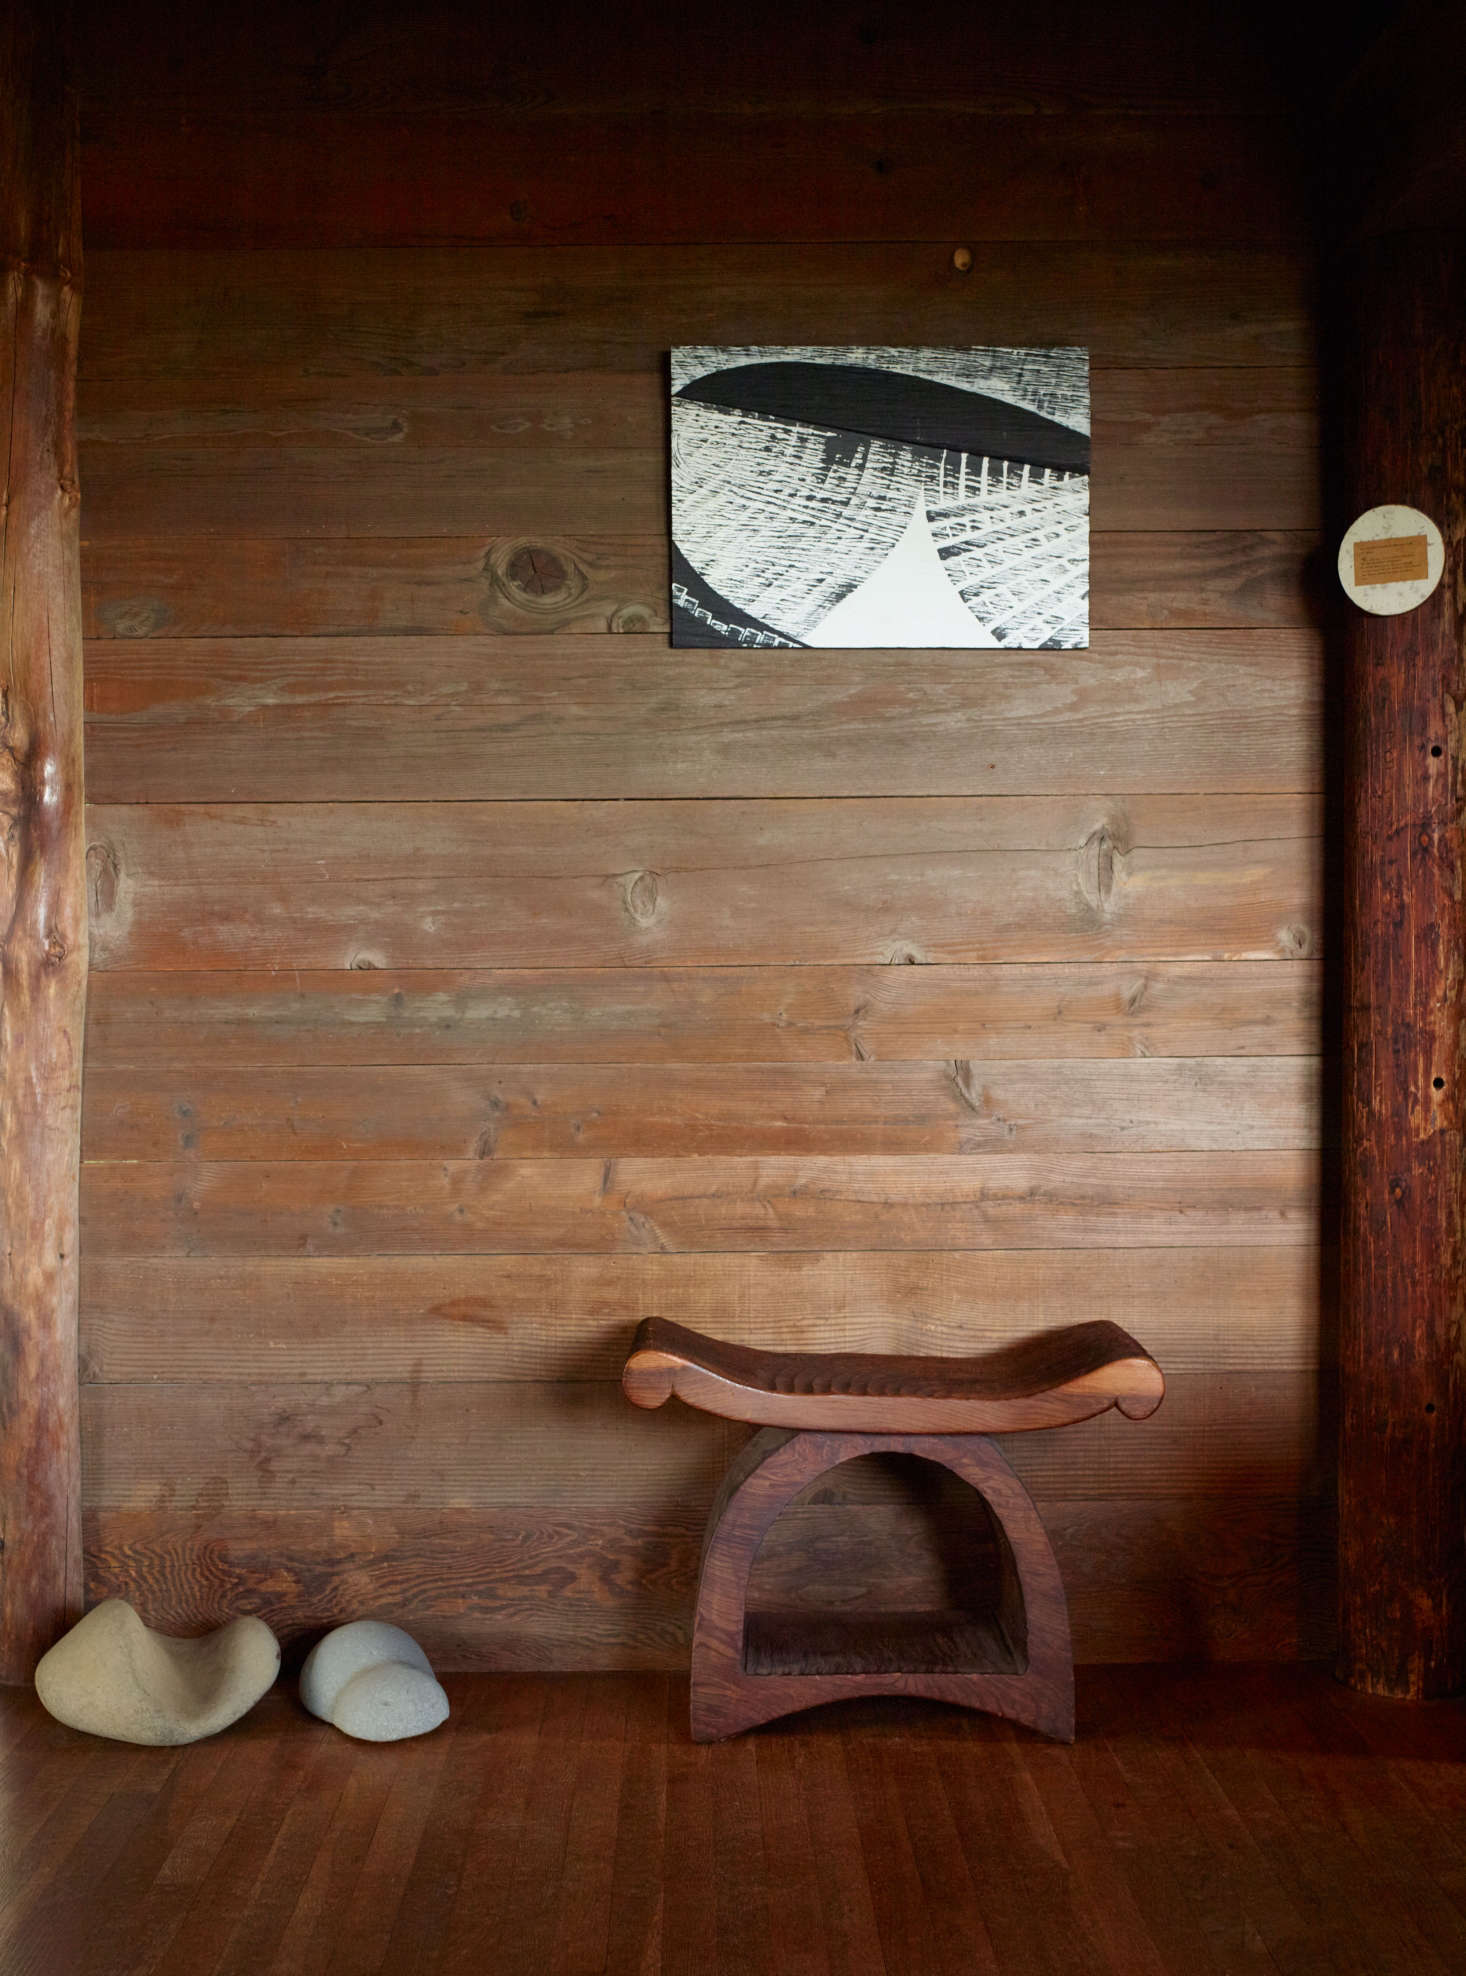 Blunk's painting in black and white mirrors the chainsaw markings on the underlying redwood plank. The flared and curved outlines of the redwood stool echo the silhouettes on a display of river rocks.